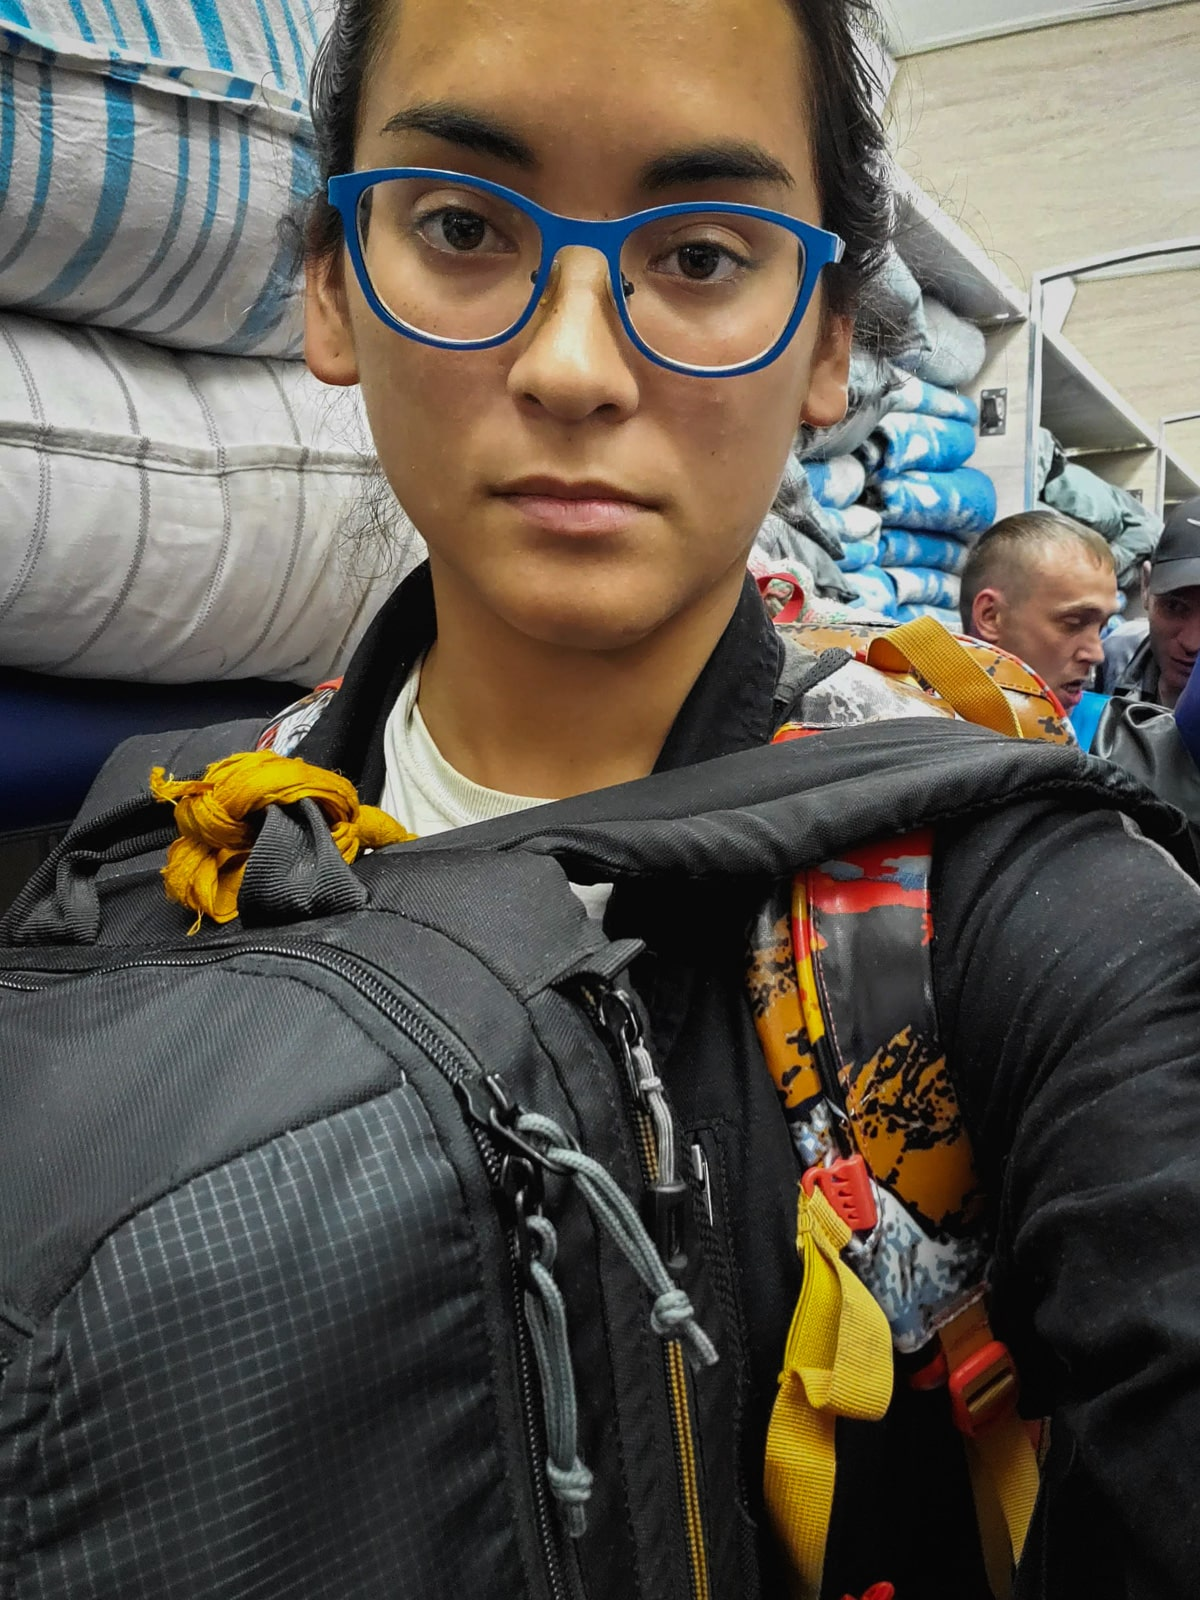 Backpacker on a Russian train